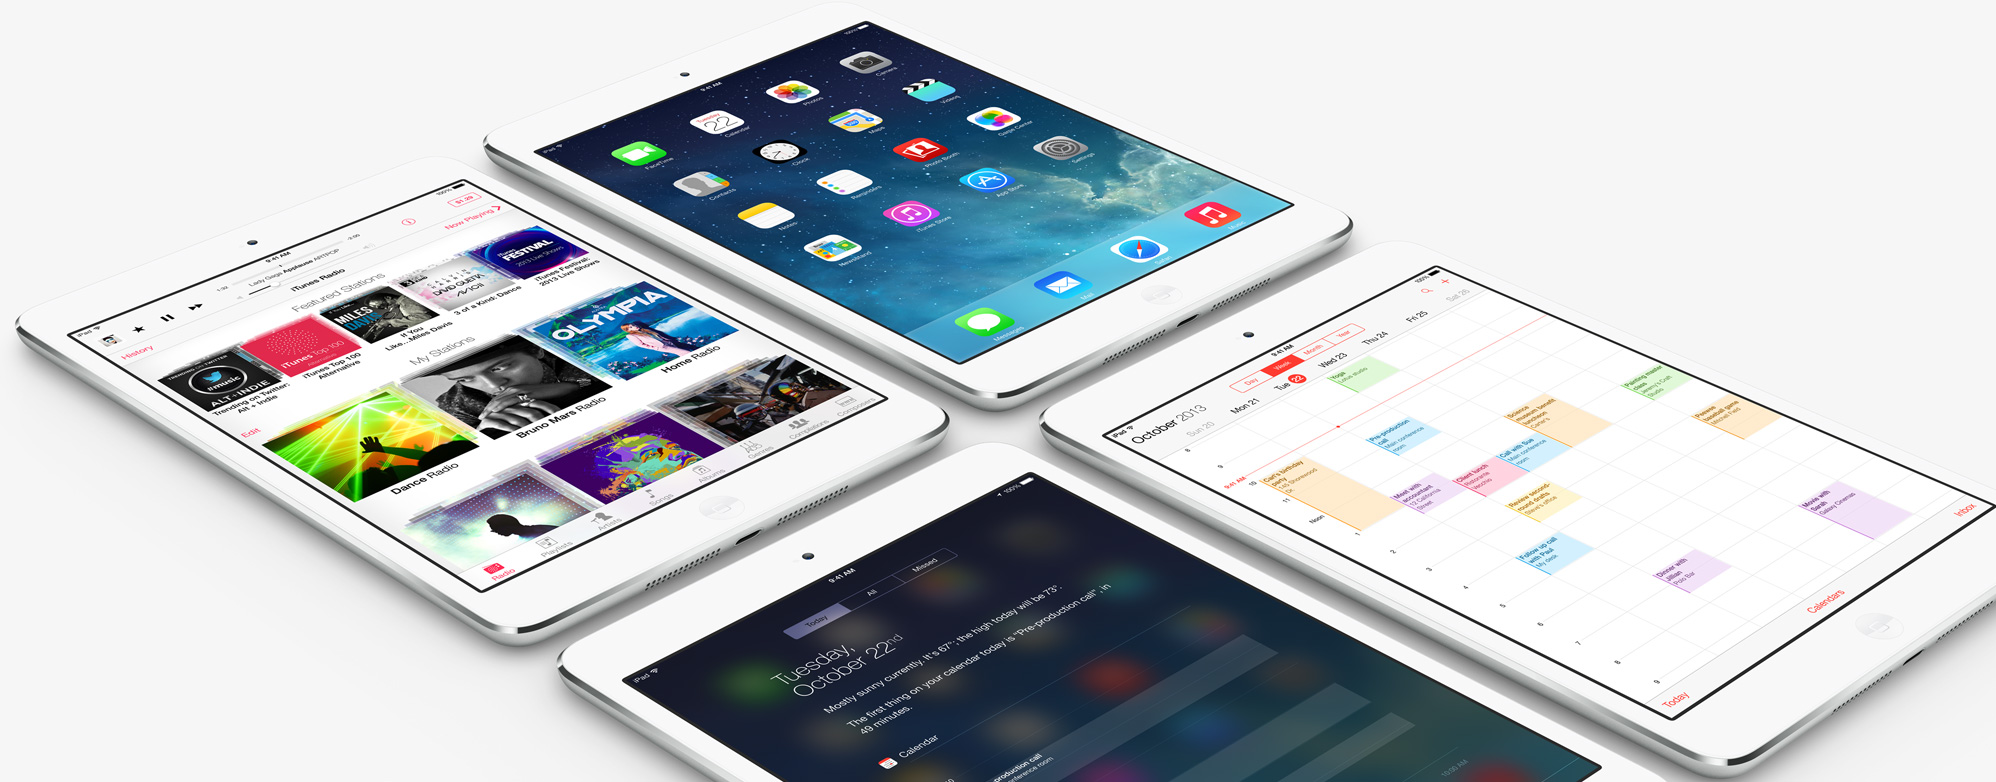 iPad mini Retina Display millones de apps 2 iOS 7